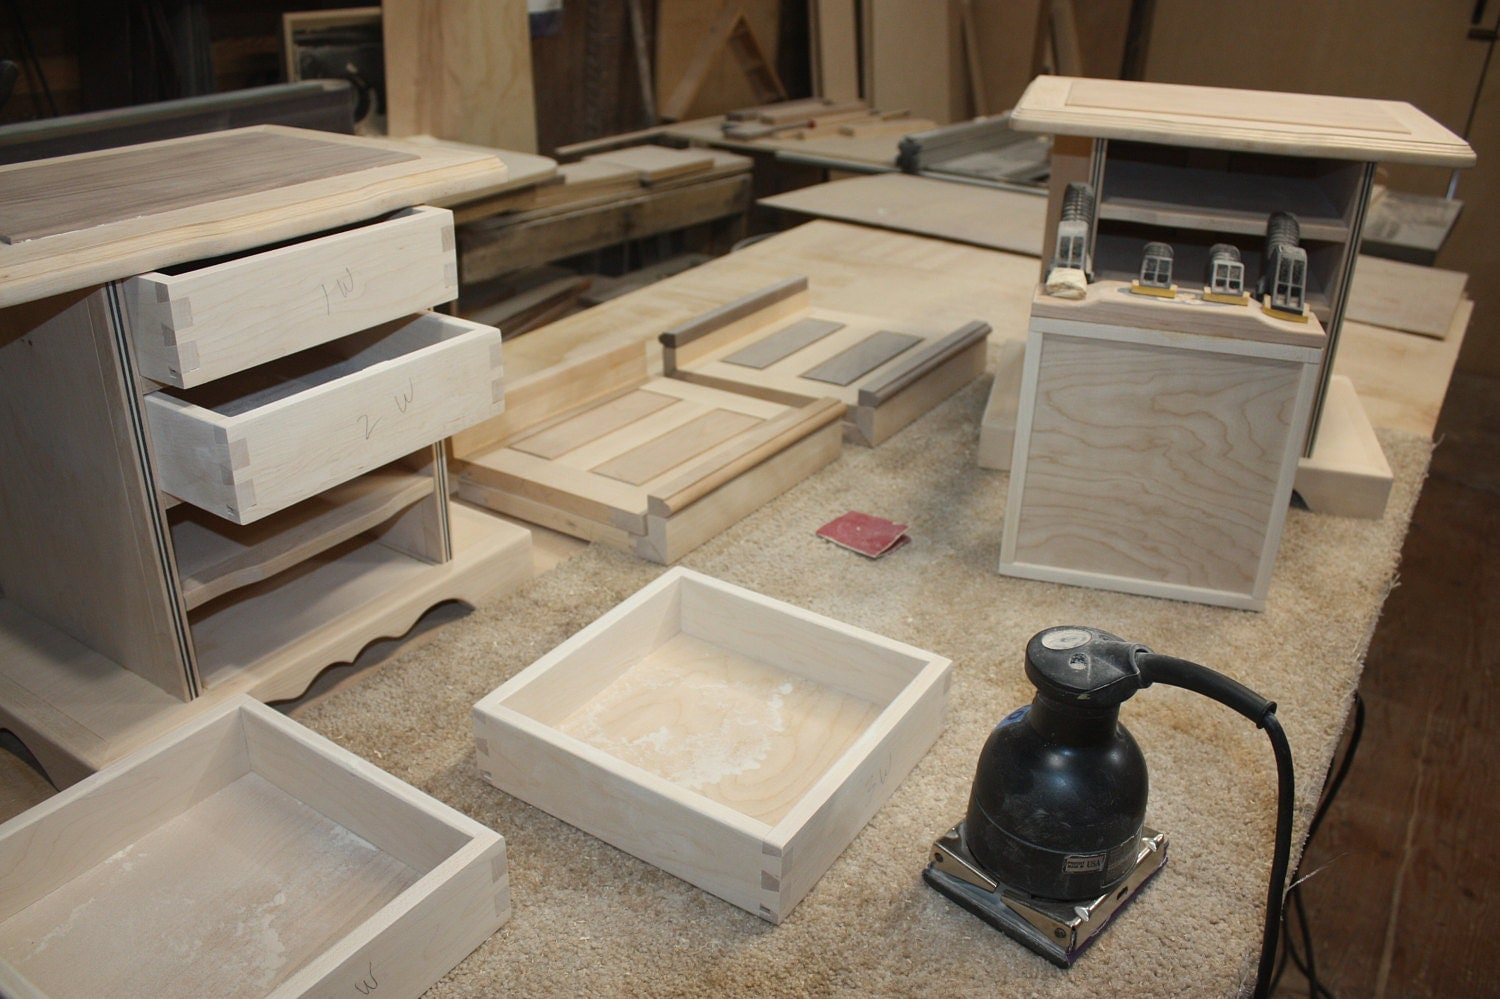 Fitting and sanding Dovetail Drawers for Handmade Jewelry Box